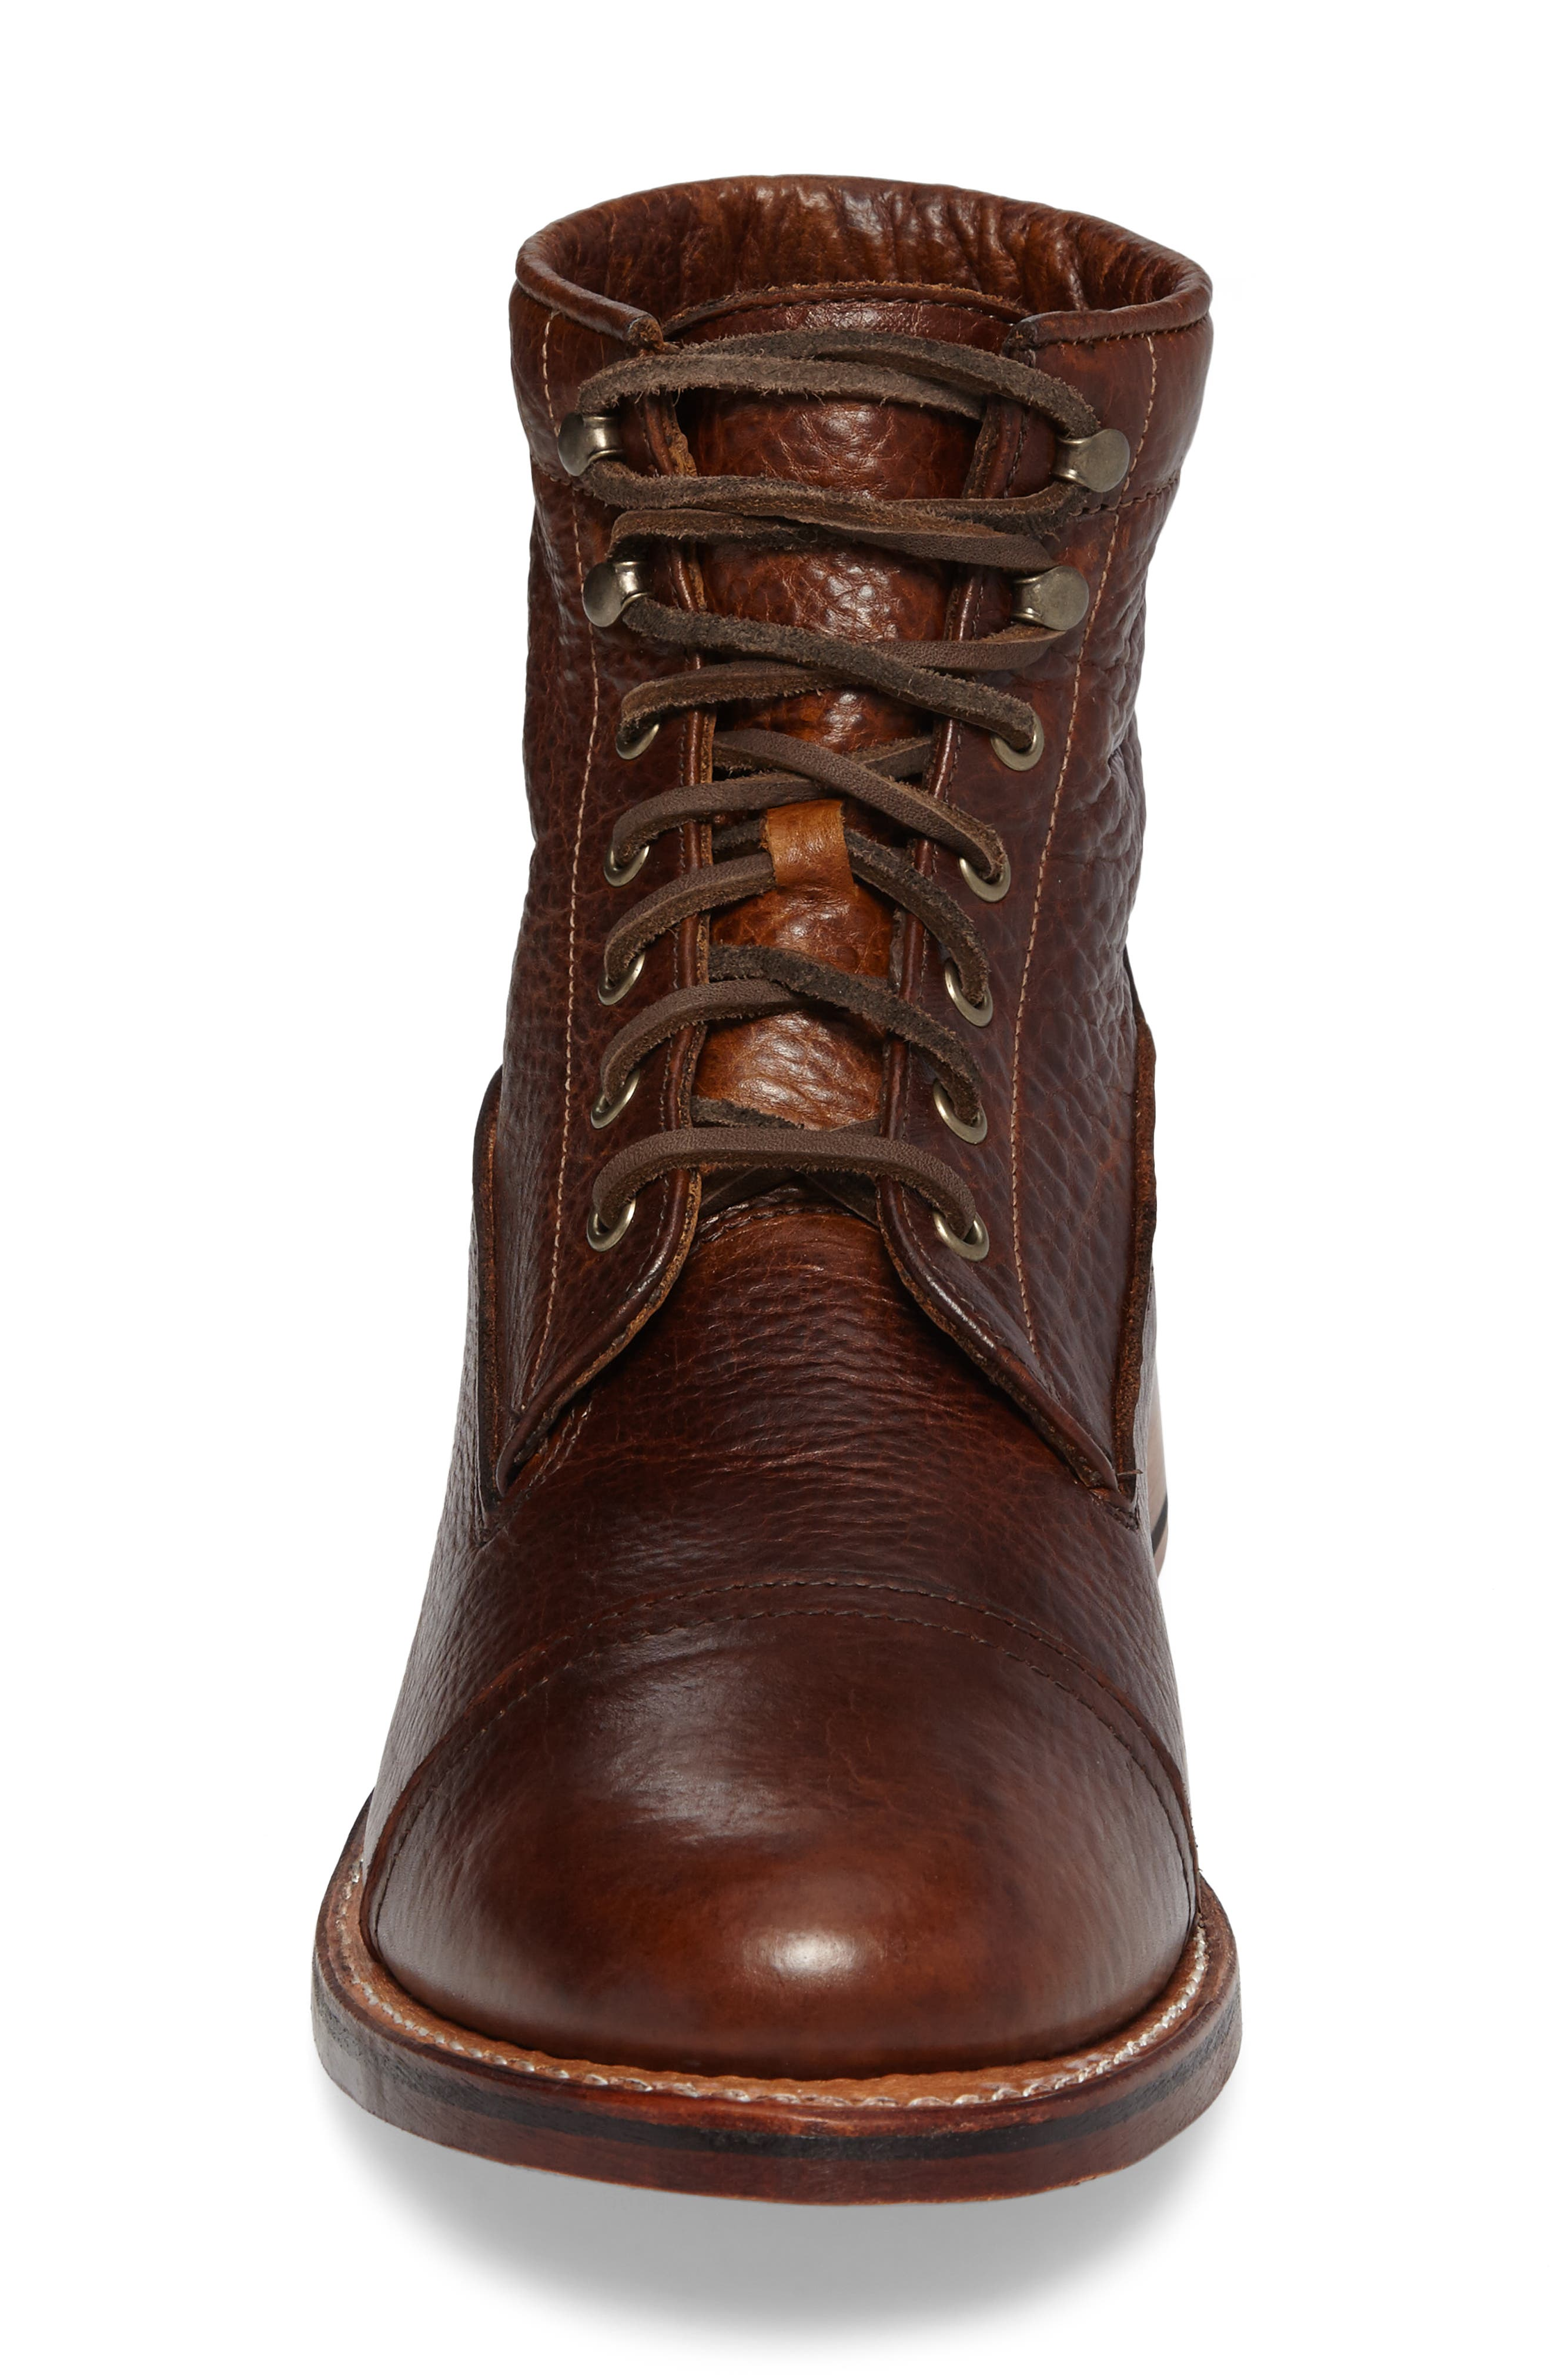 Ariat Highlands Cap Toe Boot,                             Alternate thumbnail 4, color,                             Whiskey Bourbon Leather